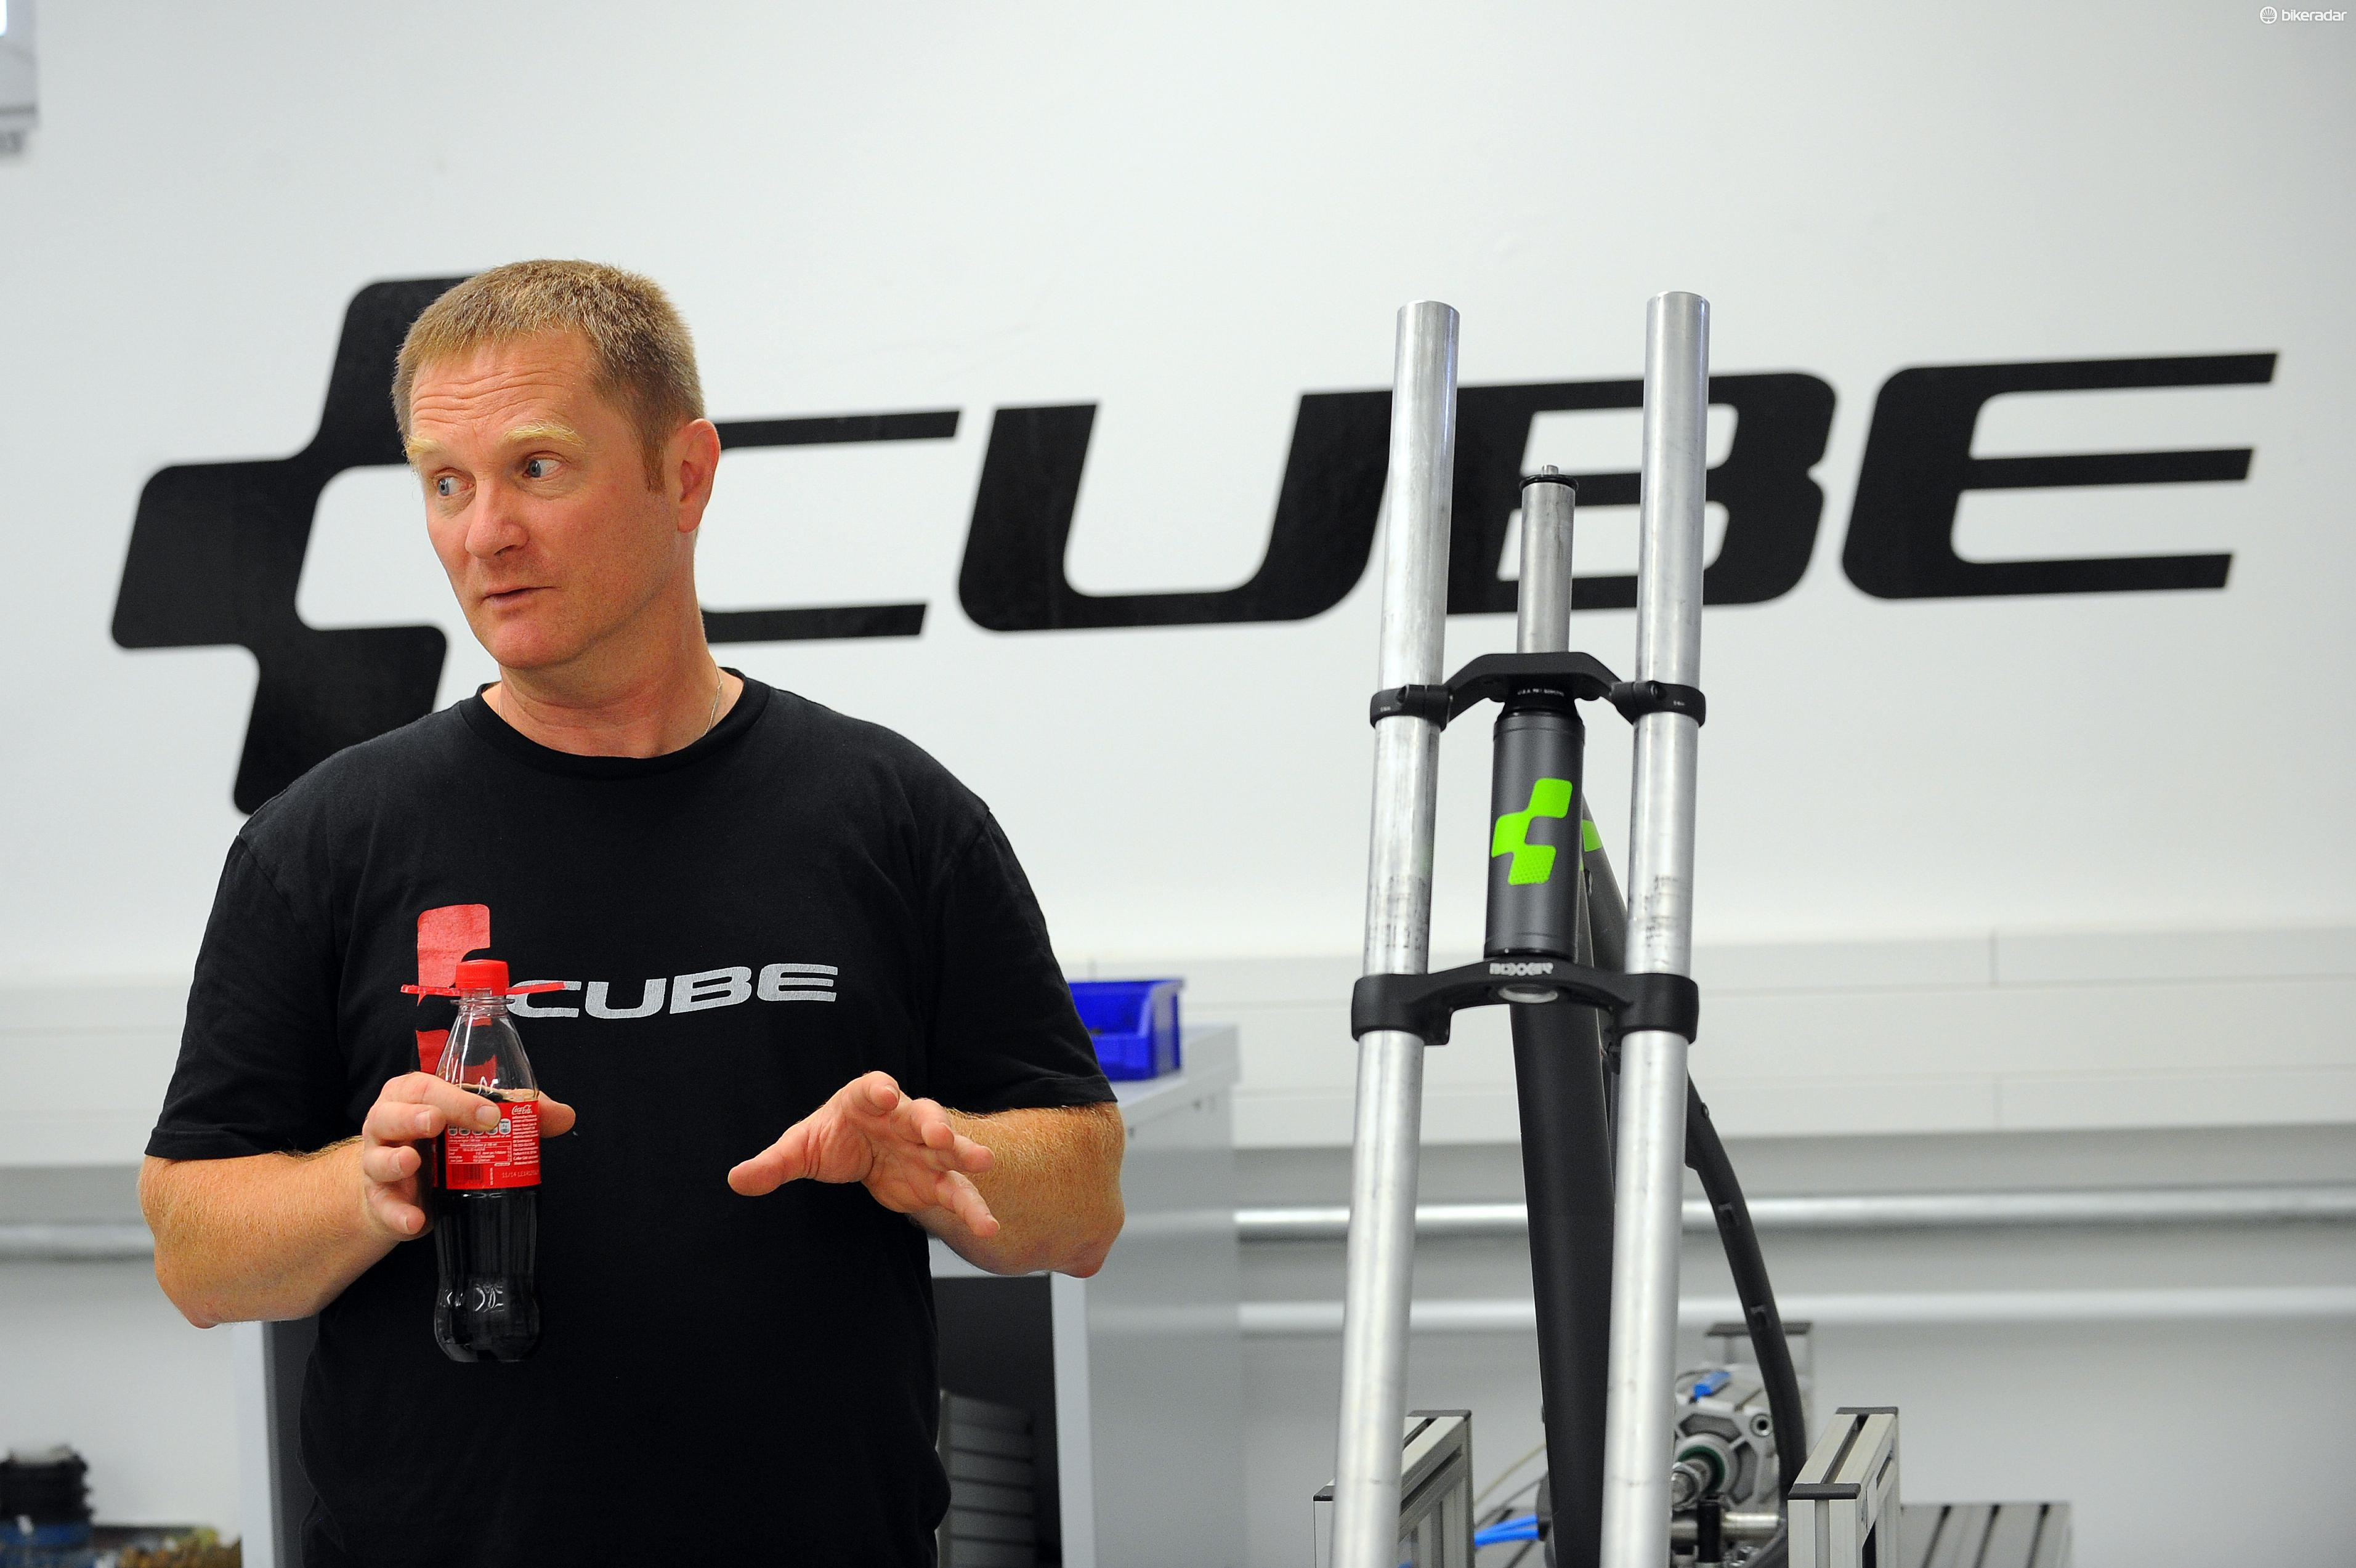 Michael Prell, one of Cube's founders and the head designer, explains to us how this machine tests head tube strength